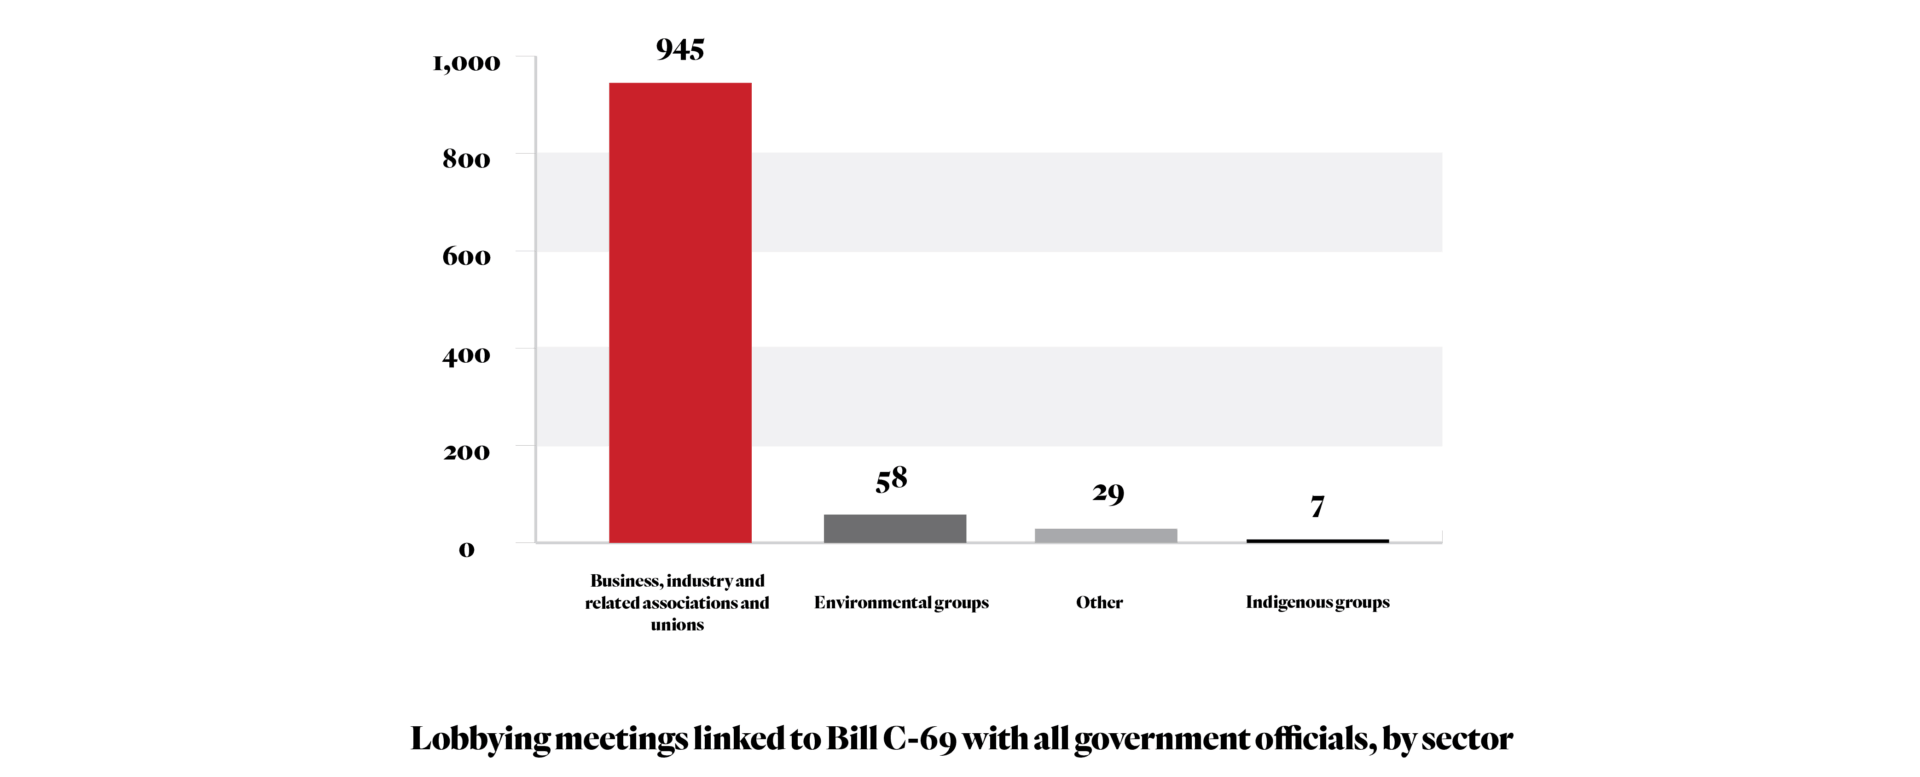 Lobbying meetings linked to Bill C-69 with all government officials, by sector